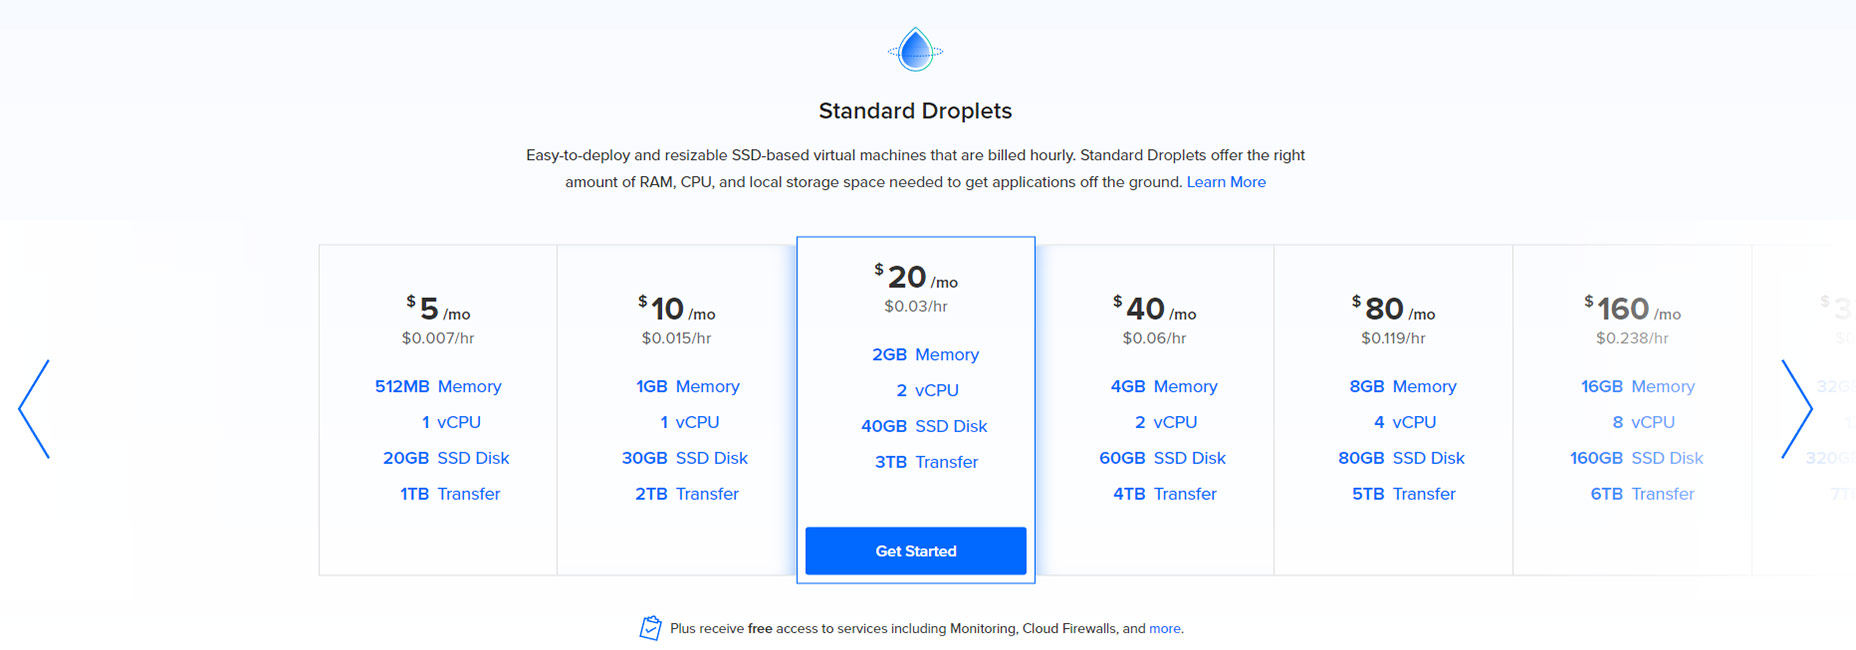 04-standard-droplets-pricing-table